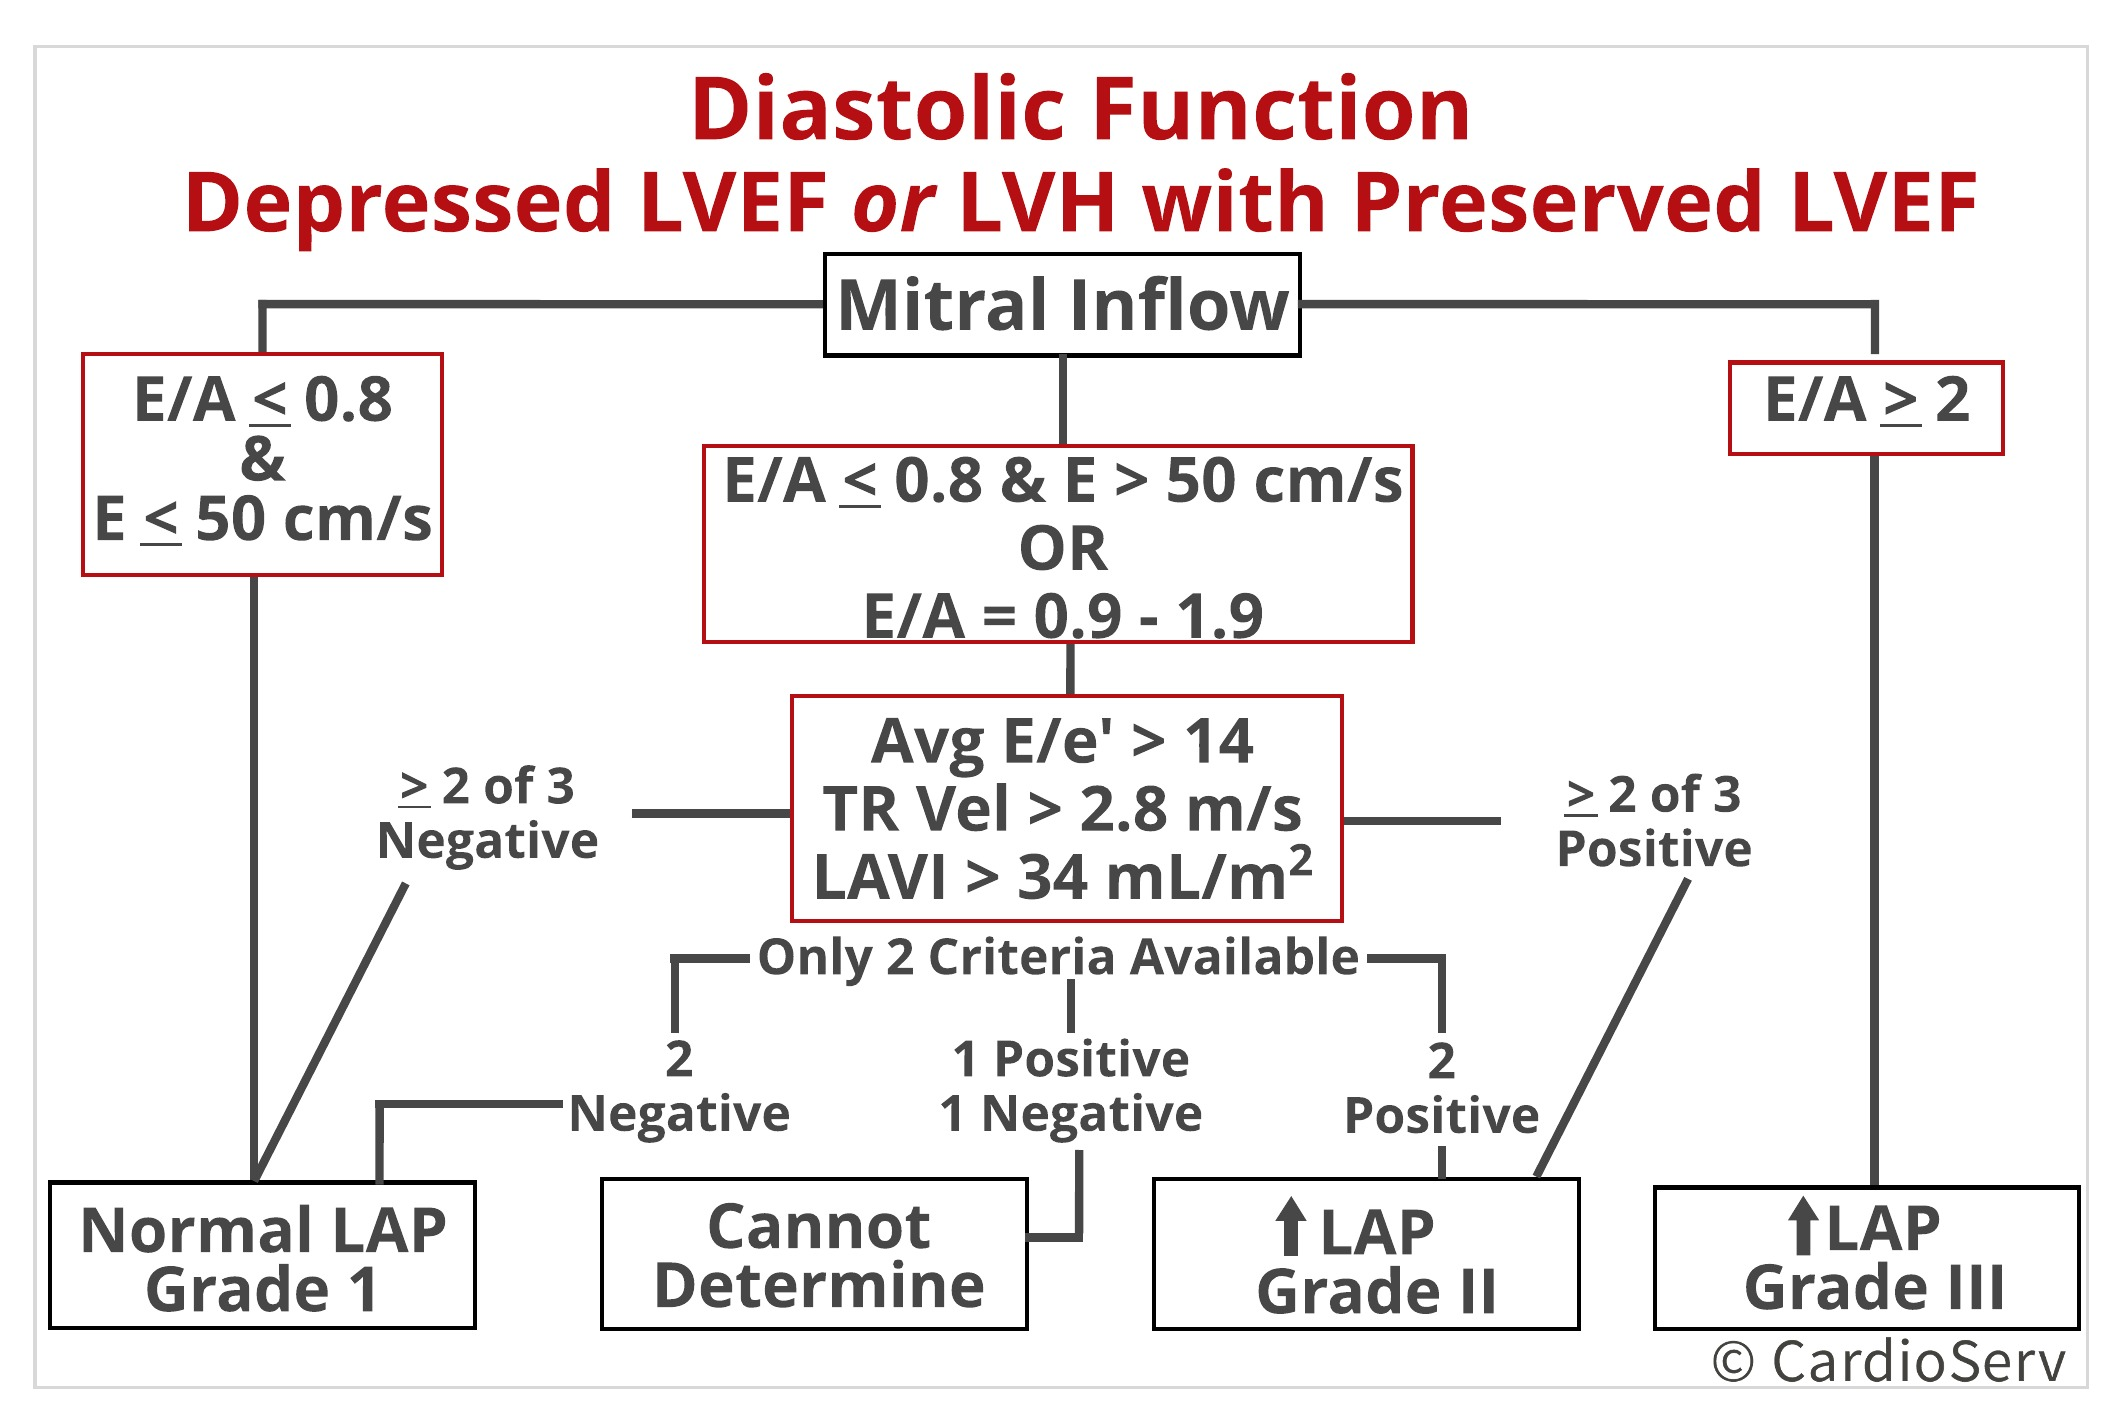 Diastolic Function Algorithm Depressed LVEF or LVH with Preserved LVEF